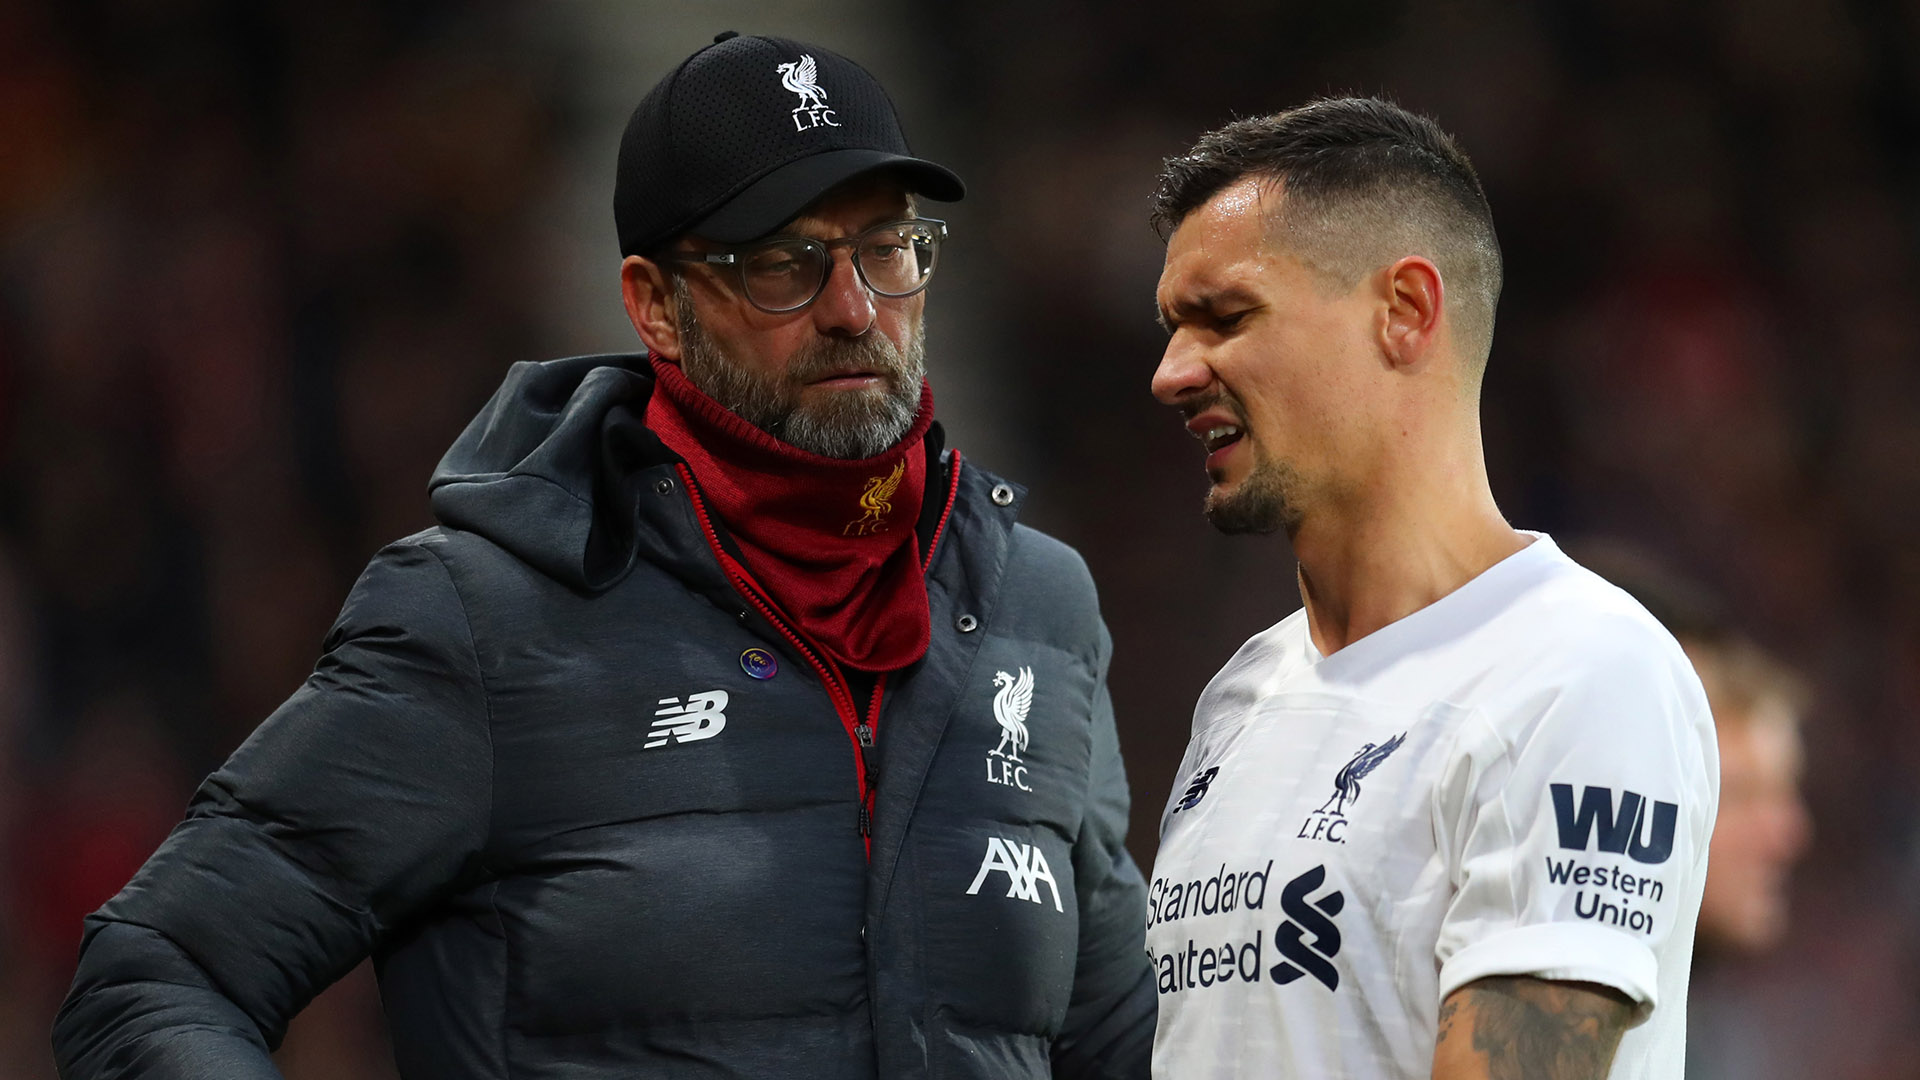 'We have problems' - Klopp admits Liverpool defensive crisis as Lovren ruled out